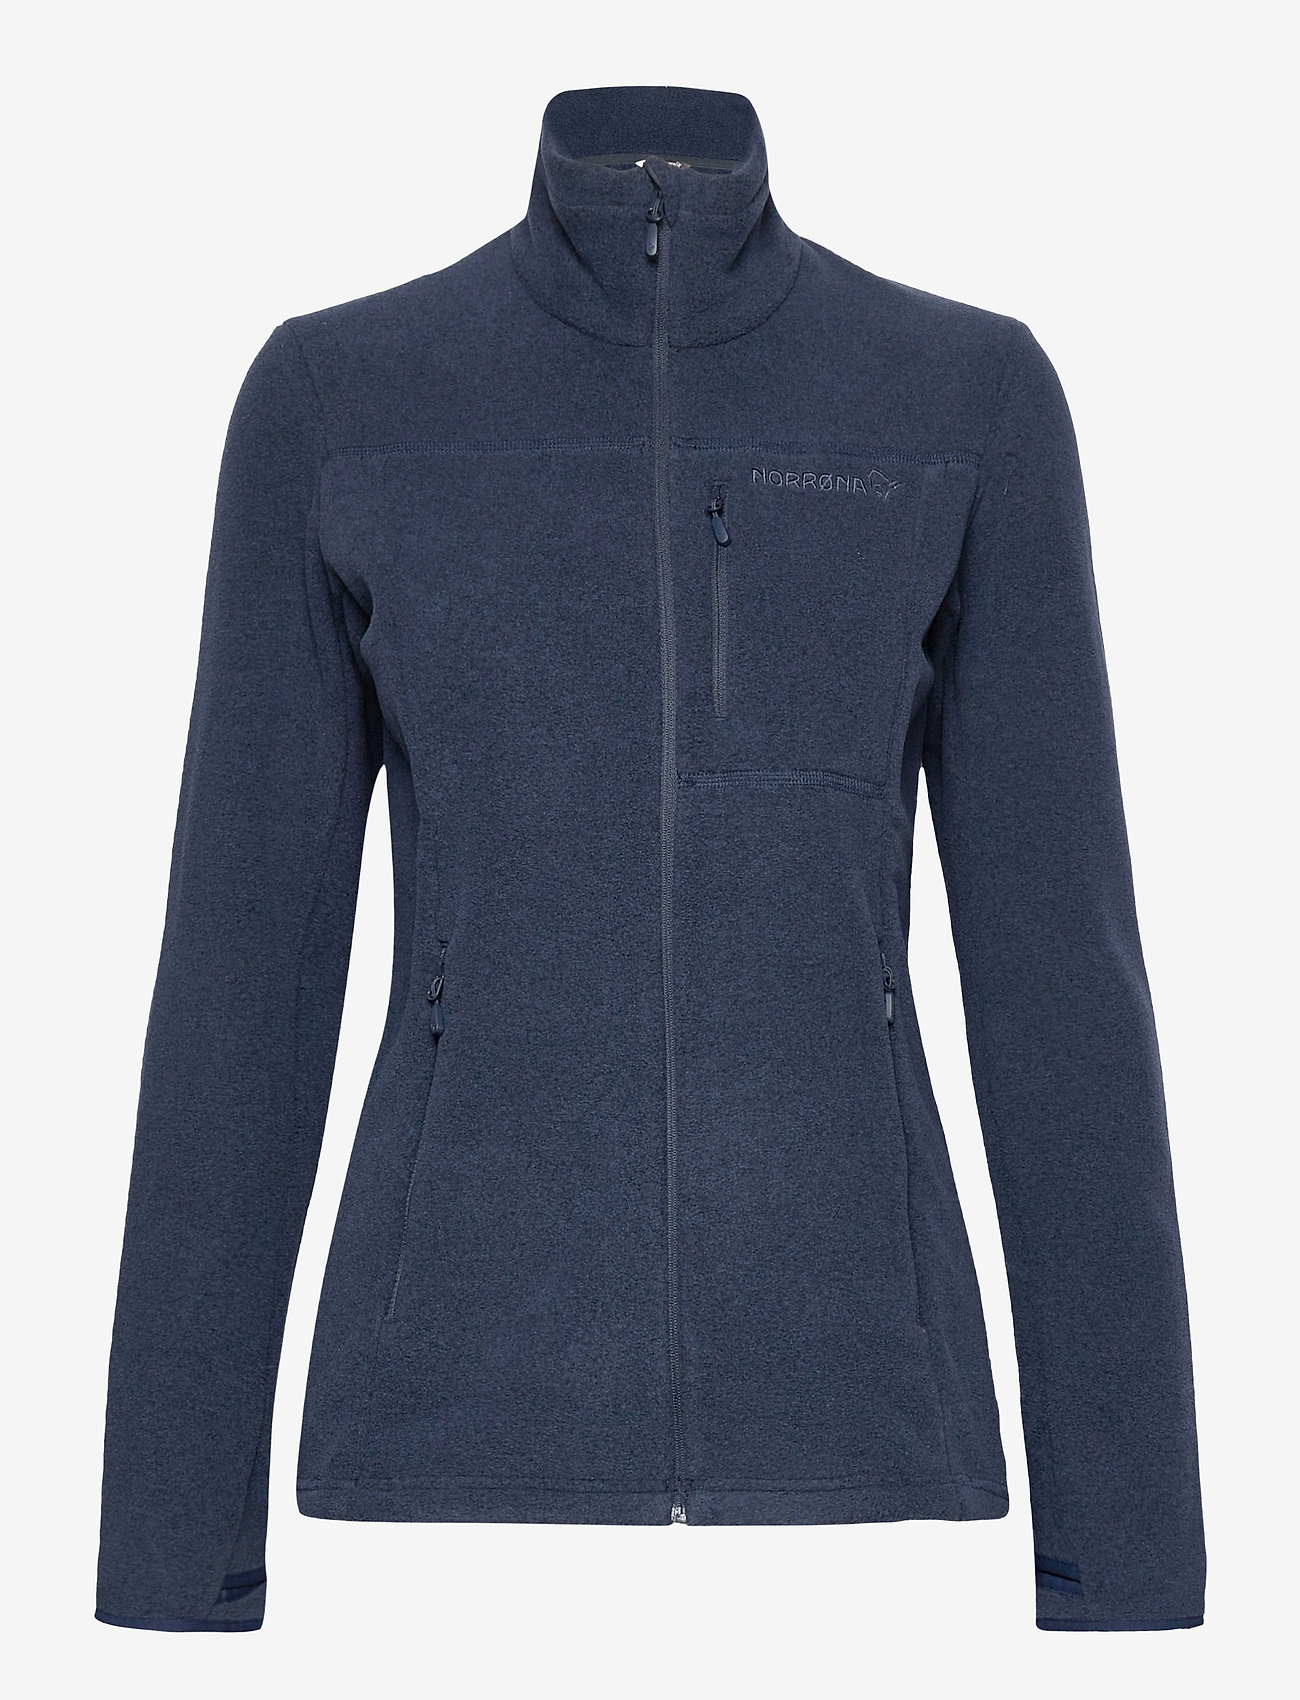 Norrøna - Norrna warm2 Jacket W's - fleece - indigo night - 0